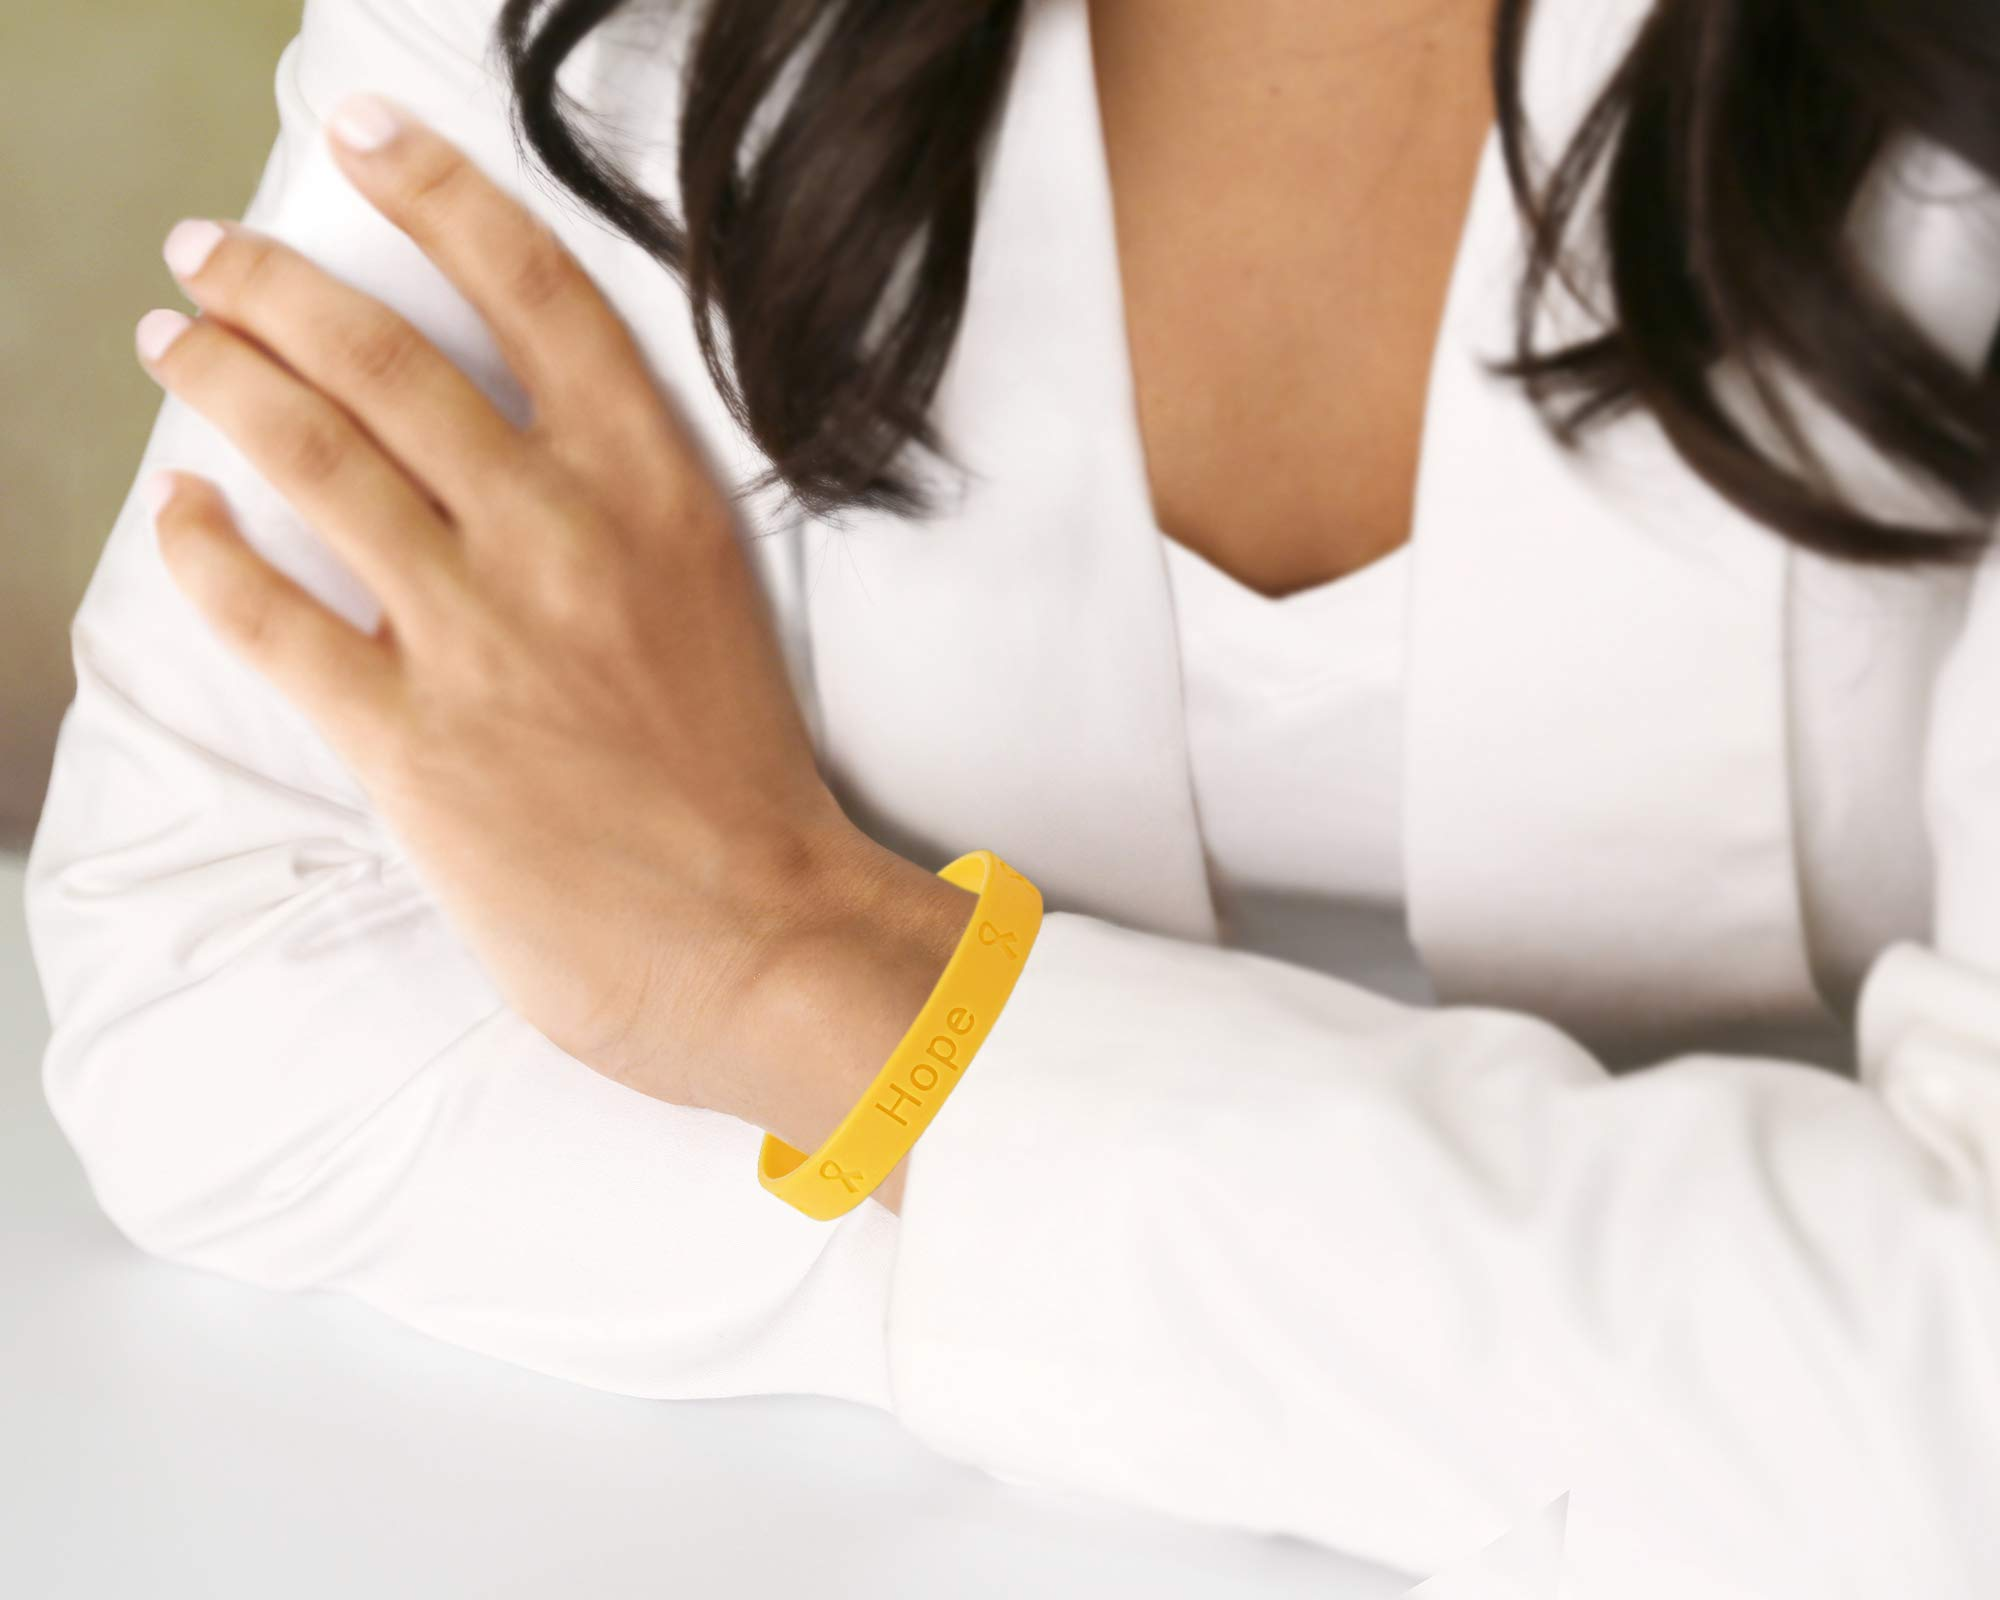 50 Pack Gold Ribbon Awareness Silicone Bracelets (50 Adult Bracelets In a Bag) by Fundraising For A Cause (Image #4)